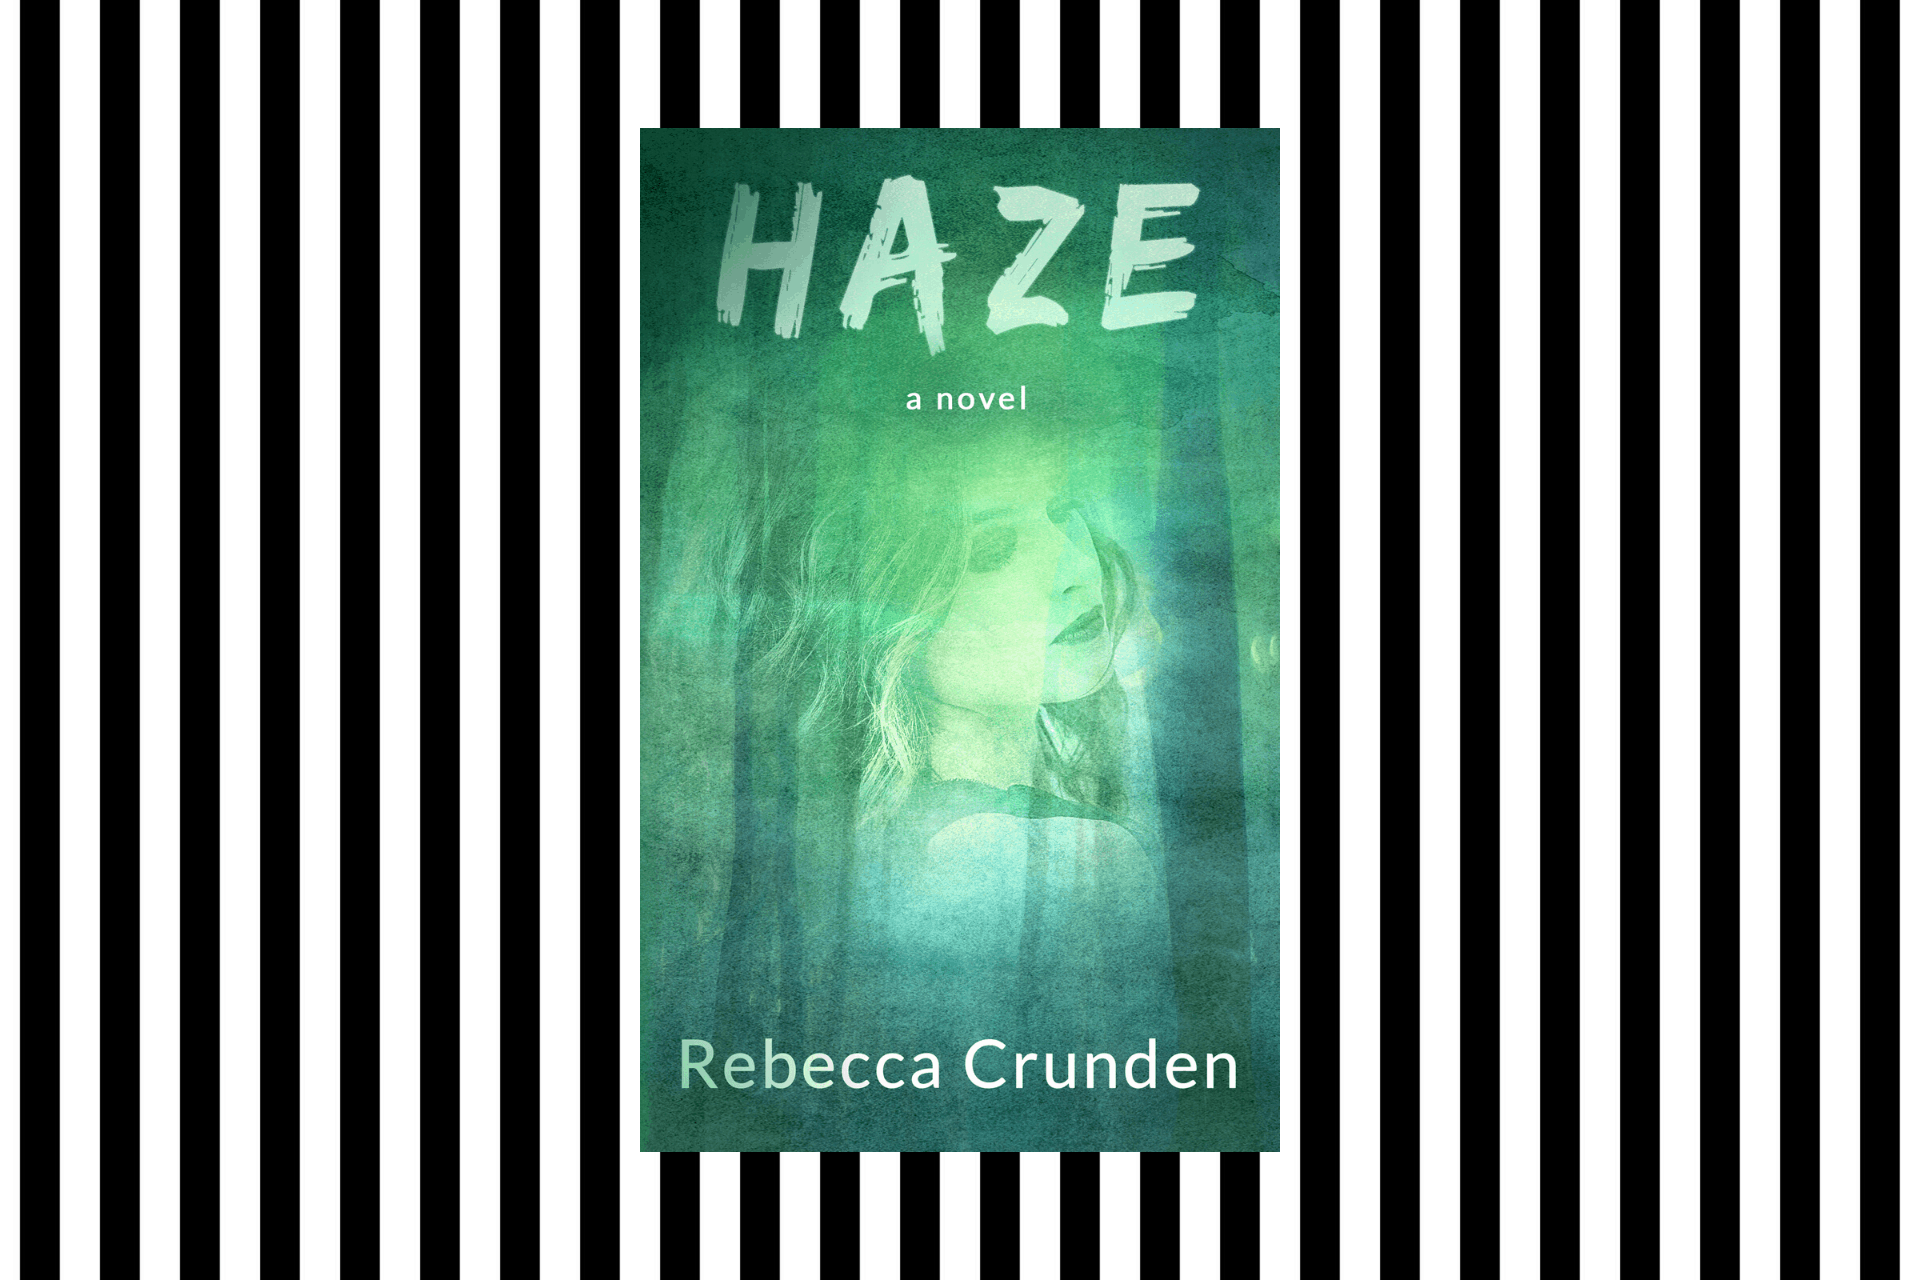 The cover of Haze by Rebecca Crunden